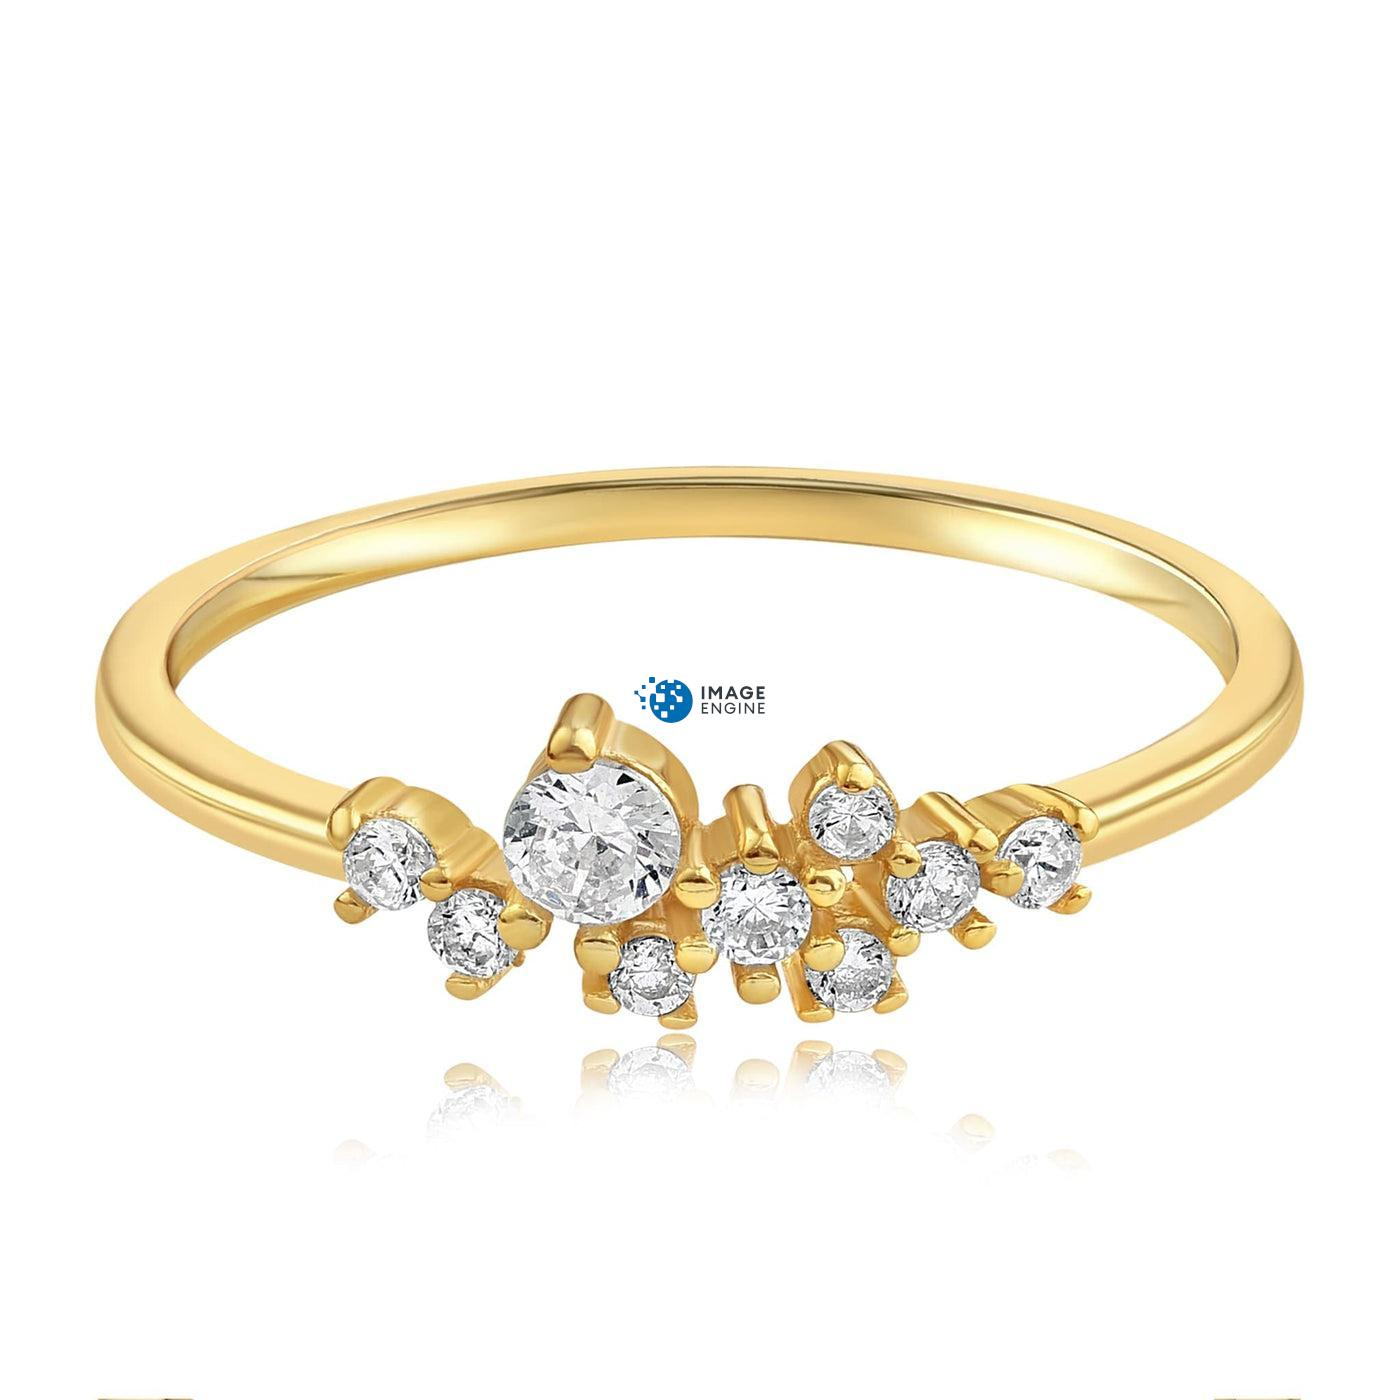 Sasha Sparkle Ring - Front View Facing Down - 18K Yellow Gold Vermeil